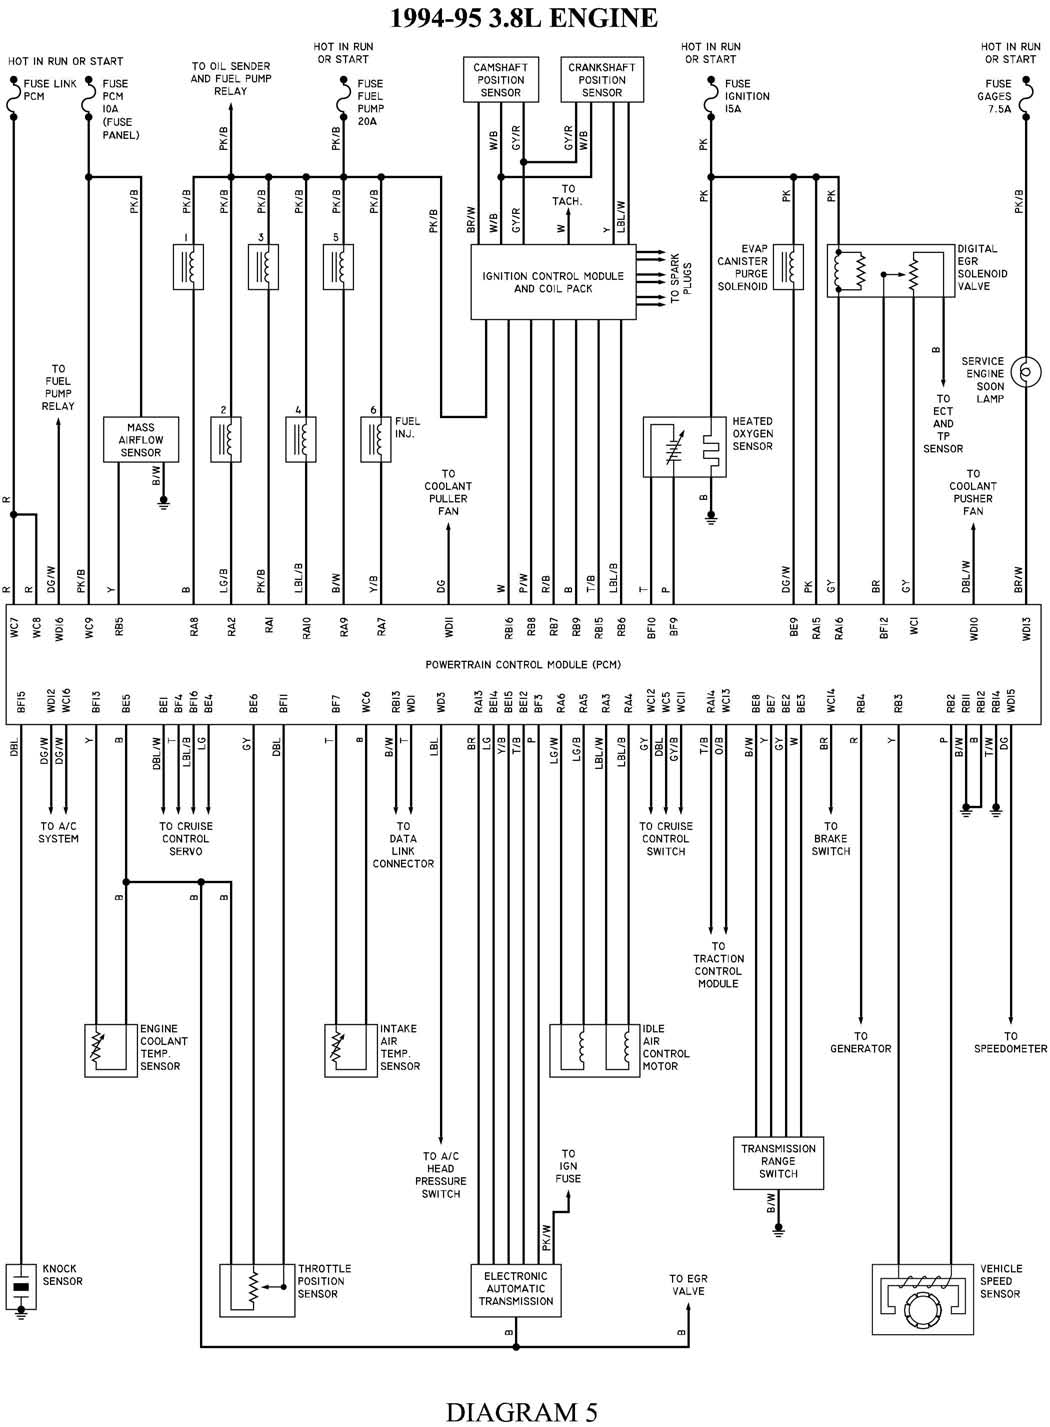 pontiac trans sport wiring diagram pontiac wiring diagrams 1995 pontiac trans sport i get an intermittent check engine light